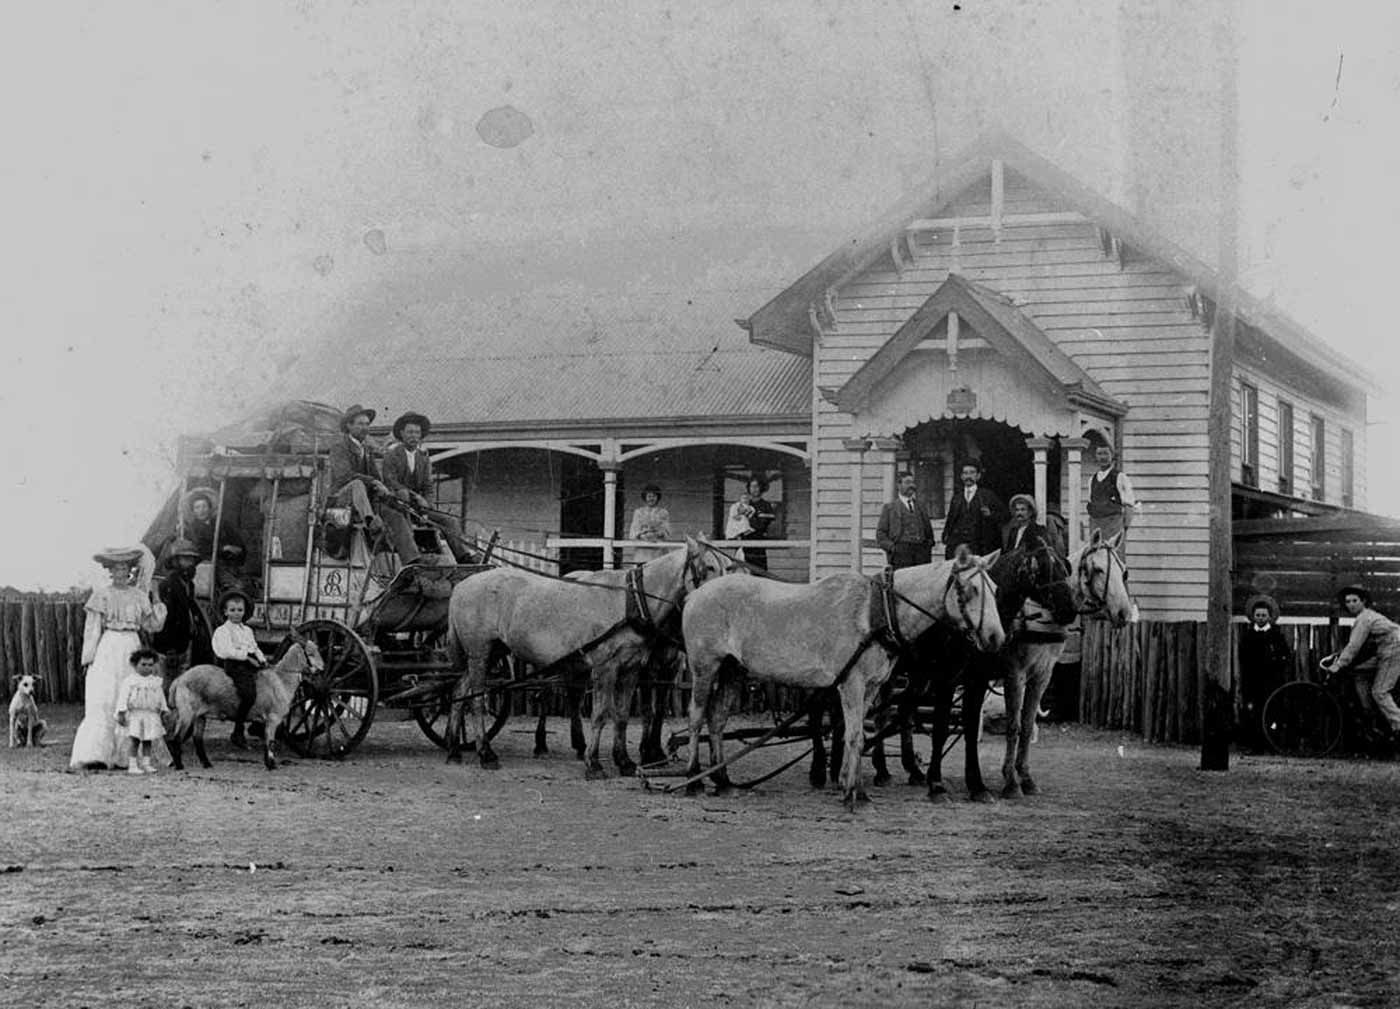 Black and white photo showing two men sitting at the front of a horsedrawn carriage. A person sits looking out a rear window of the carriage, which is loaded inside and on top with goods. A small child riding a goat stands alongside, with a man, woman and another child. Several people stand behind on the verandah of a weatherboard building. - click to view larger image